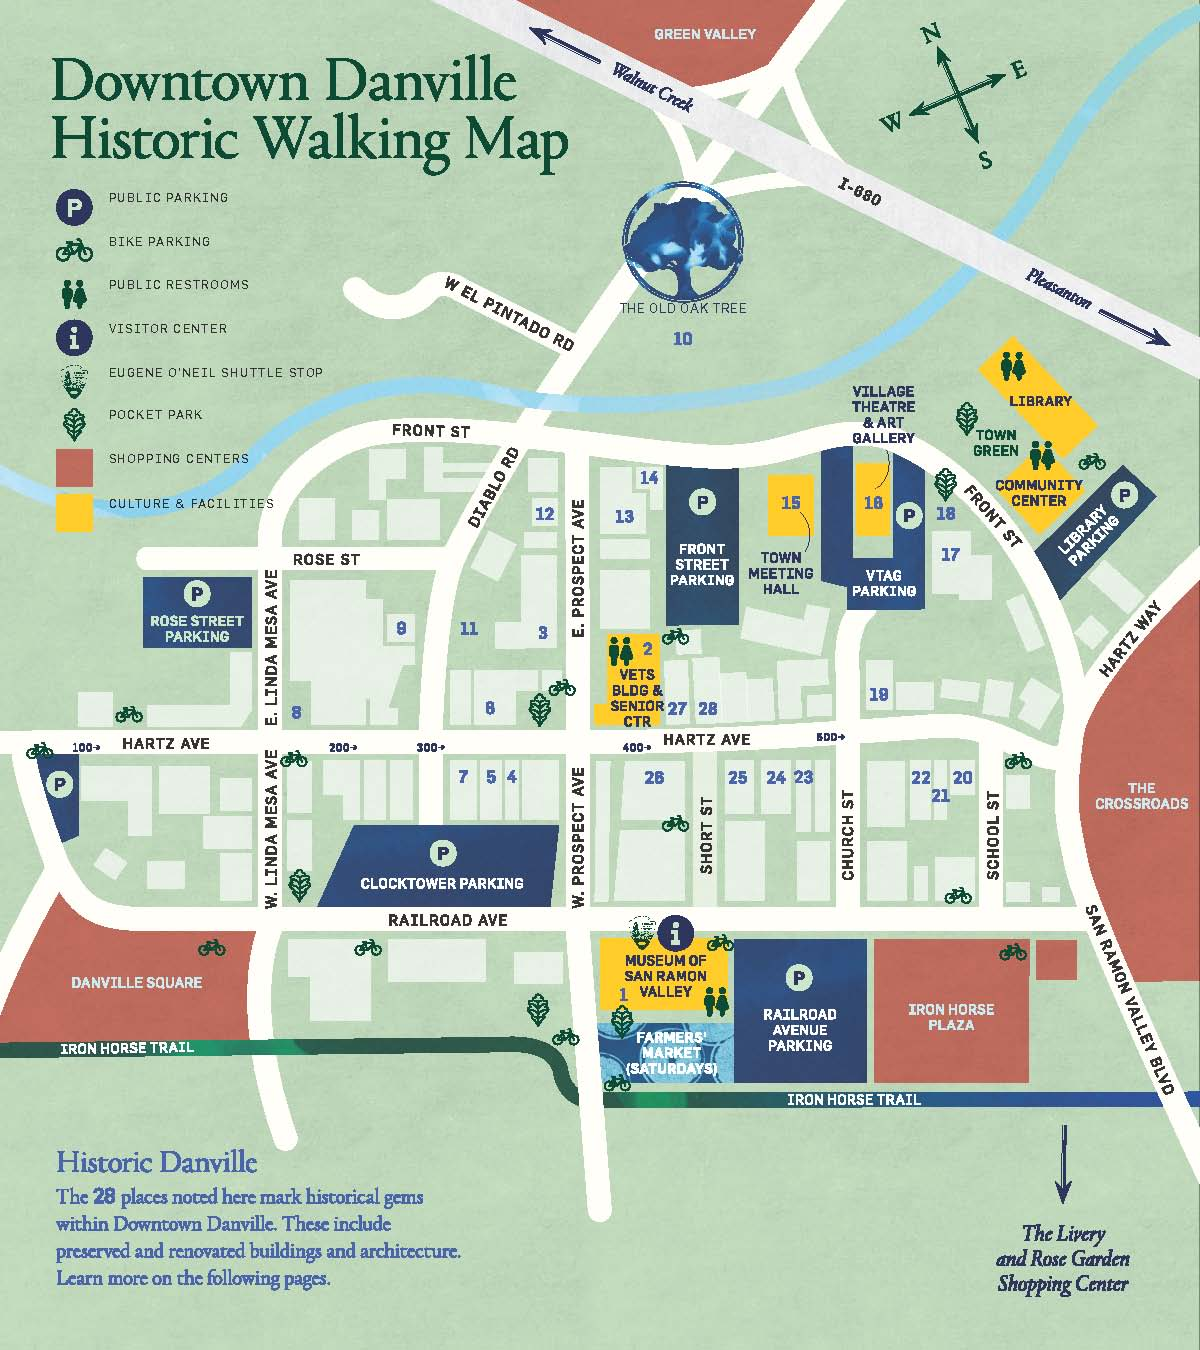 Danville Downtown Historic Walking Map